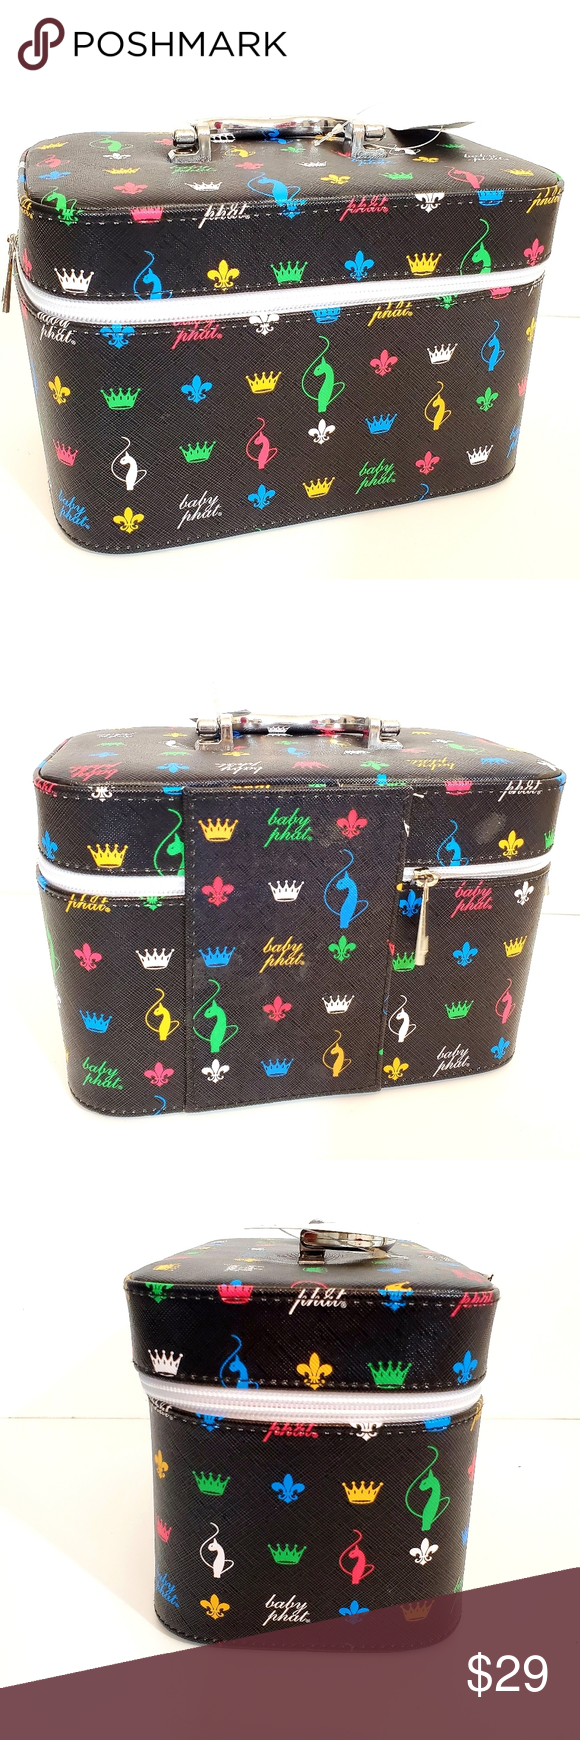 Baby Phat Multi colored Cosmetic Case NWT Baby phat